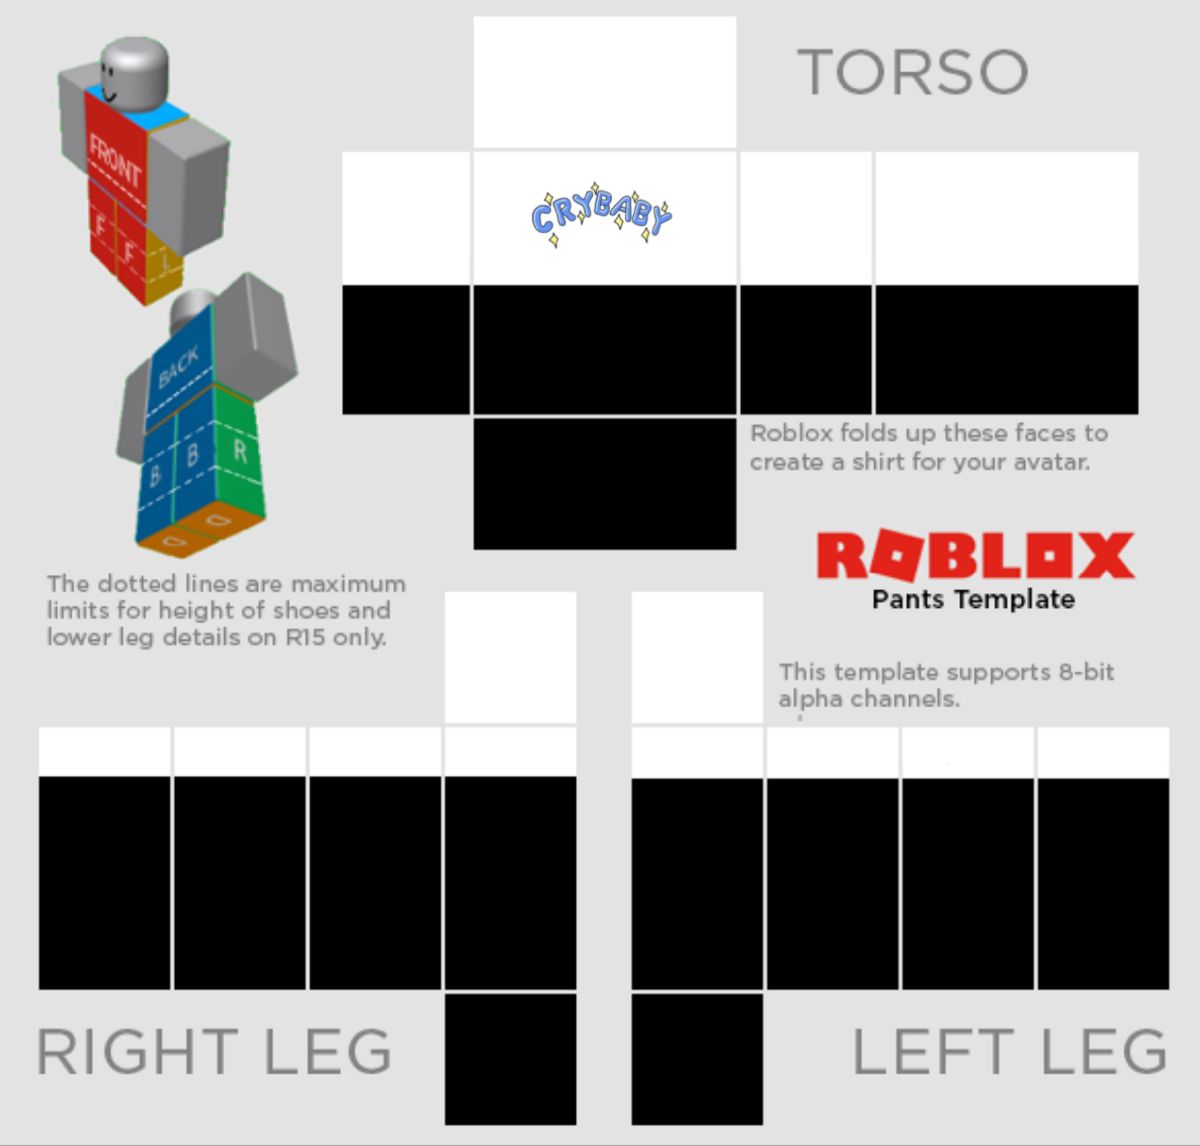 Pin By Familia Alvarezcastro On Roblox In 2020 Roblox Shirt Create Shirts Aesthetic Template